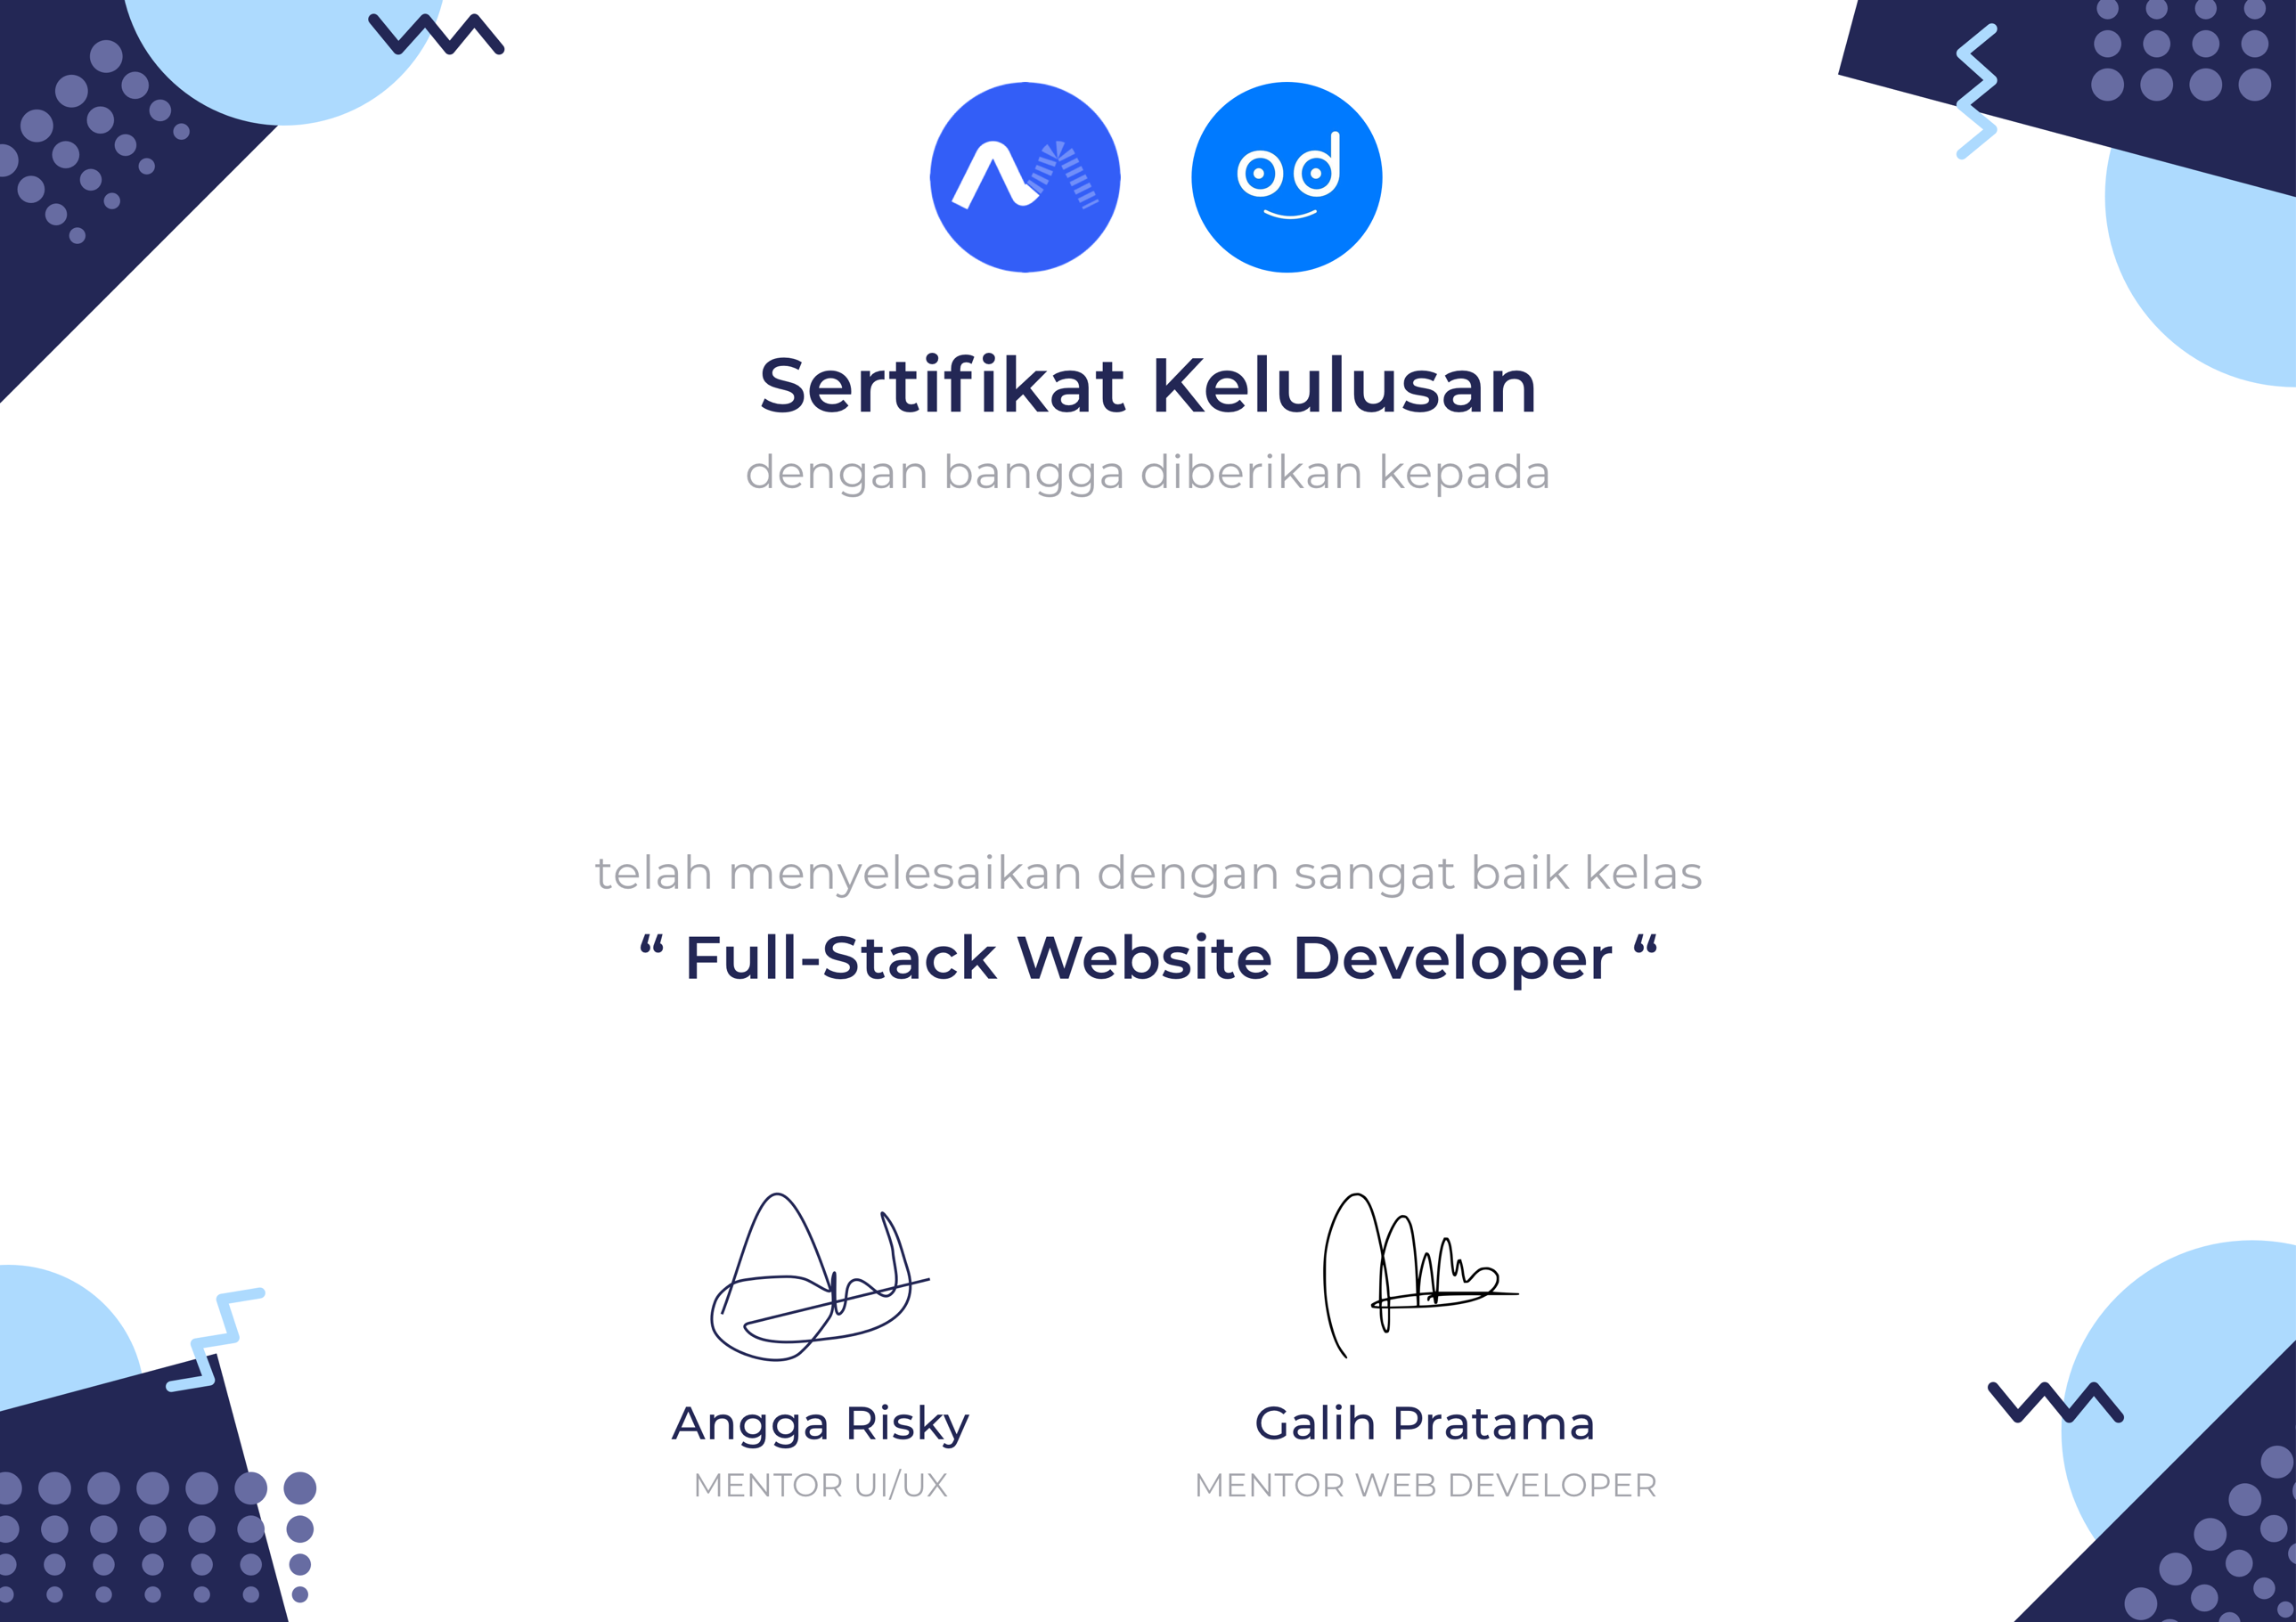 /storage/assets/images/certificates/sertifikat kelas full stack web developer buildwith angga.png BuildWith Angga